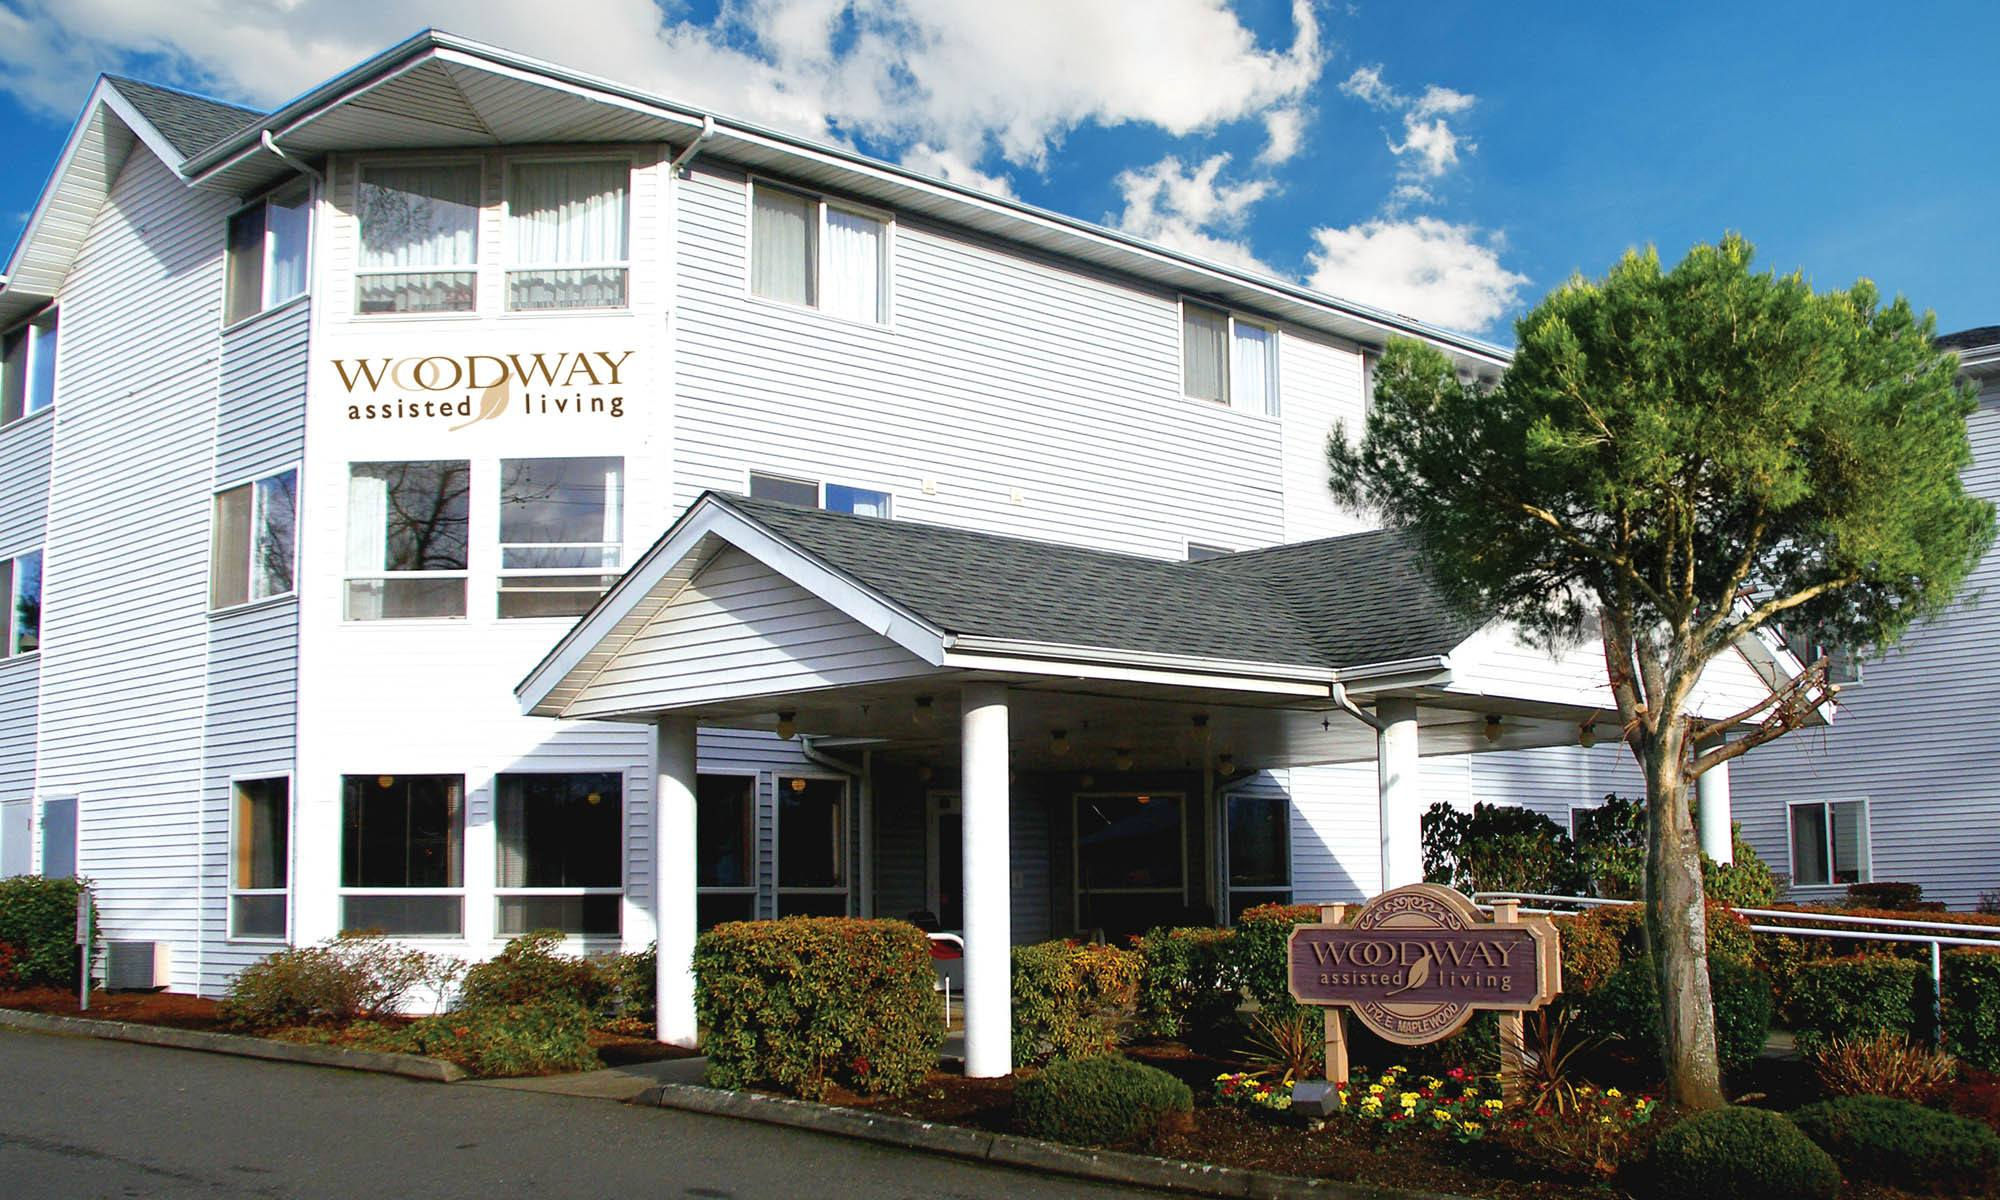 Welcome to Woodway Assisted Living in Bellingham